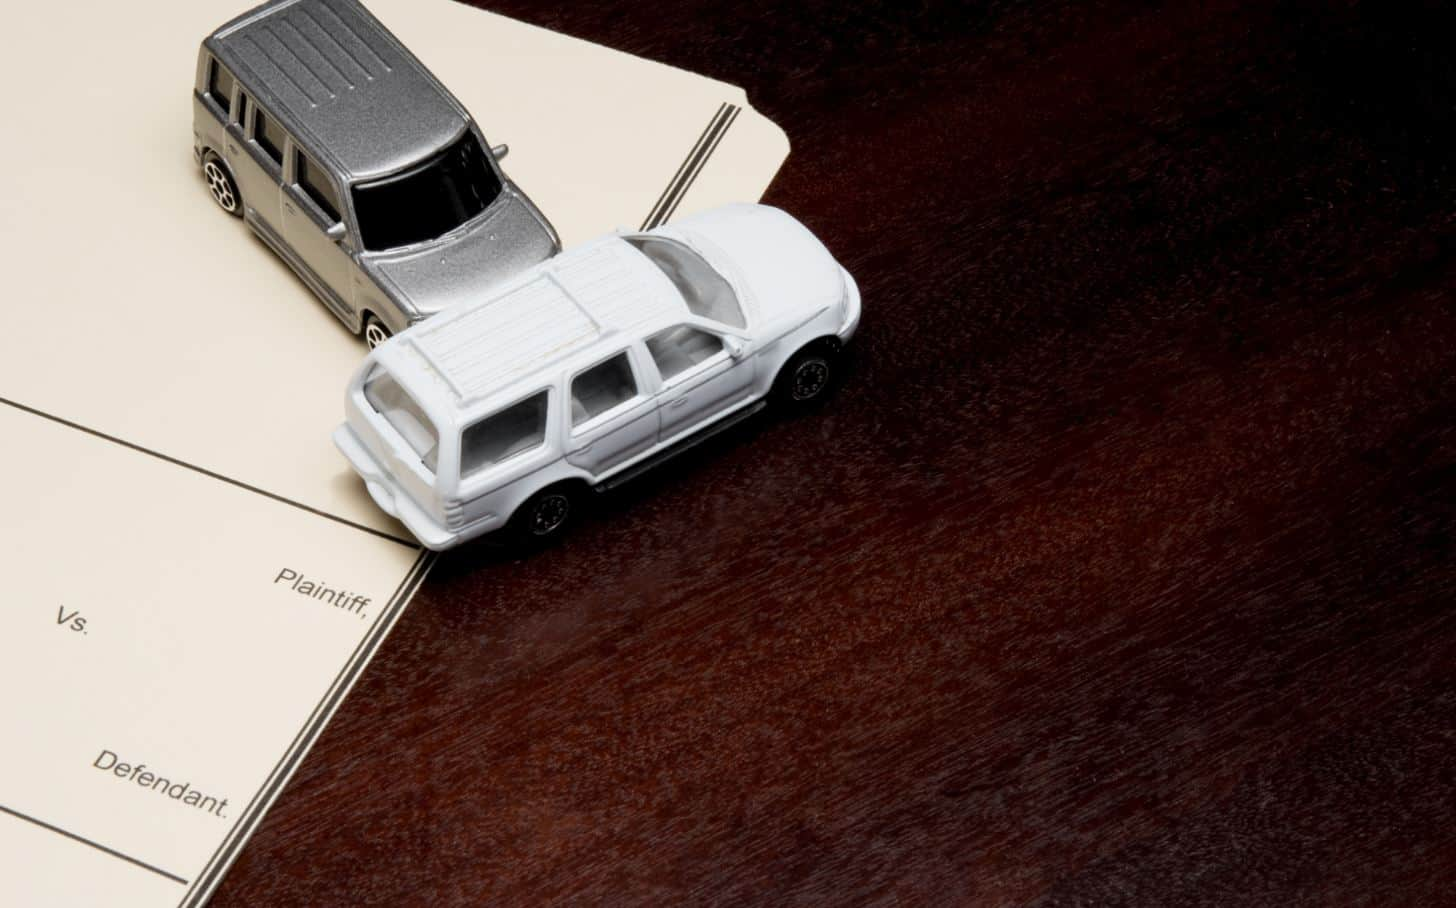 two toy cars demonstrating a t-bone crash on a desk and legal paperwork